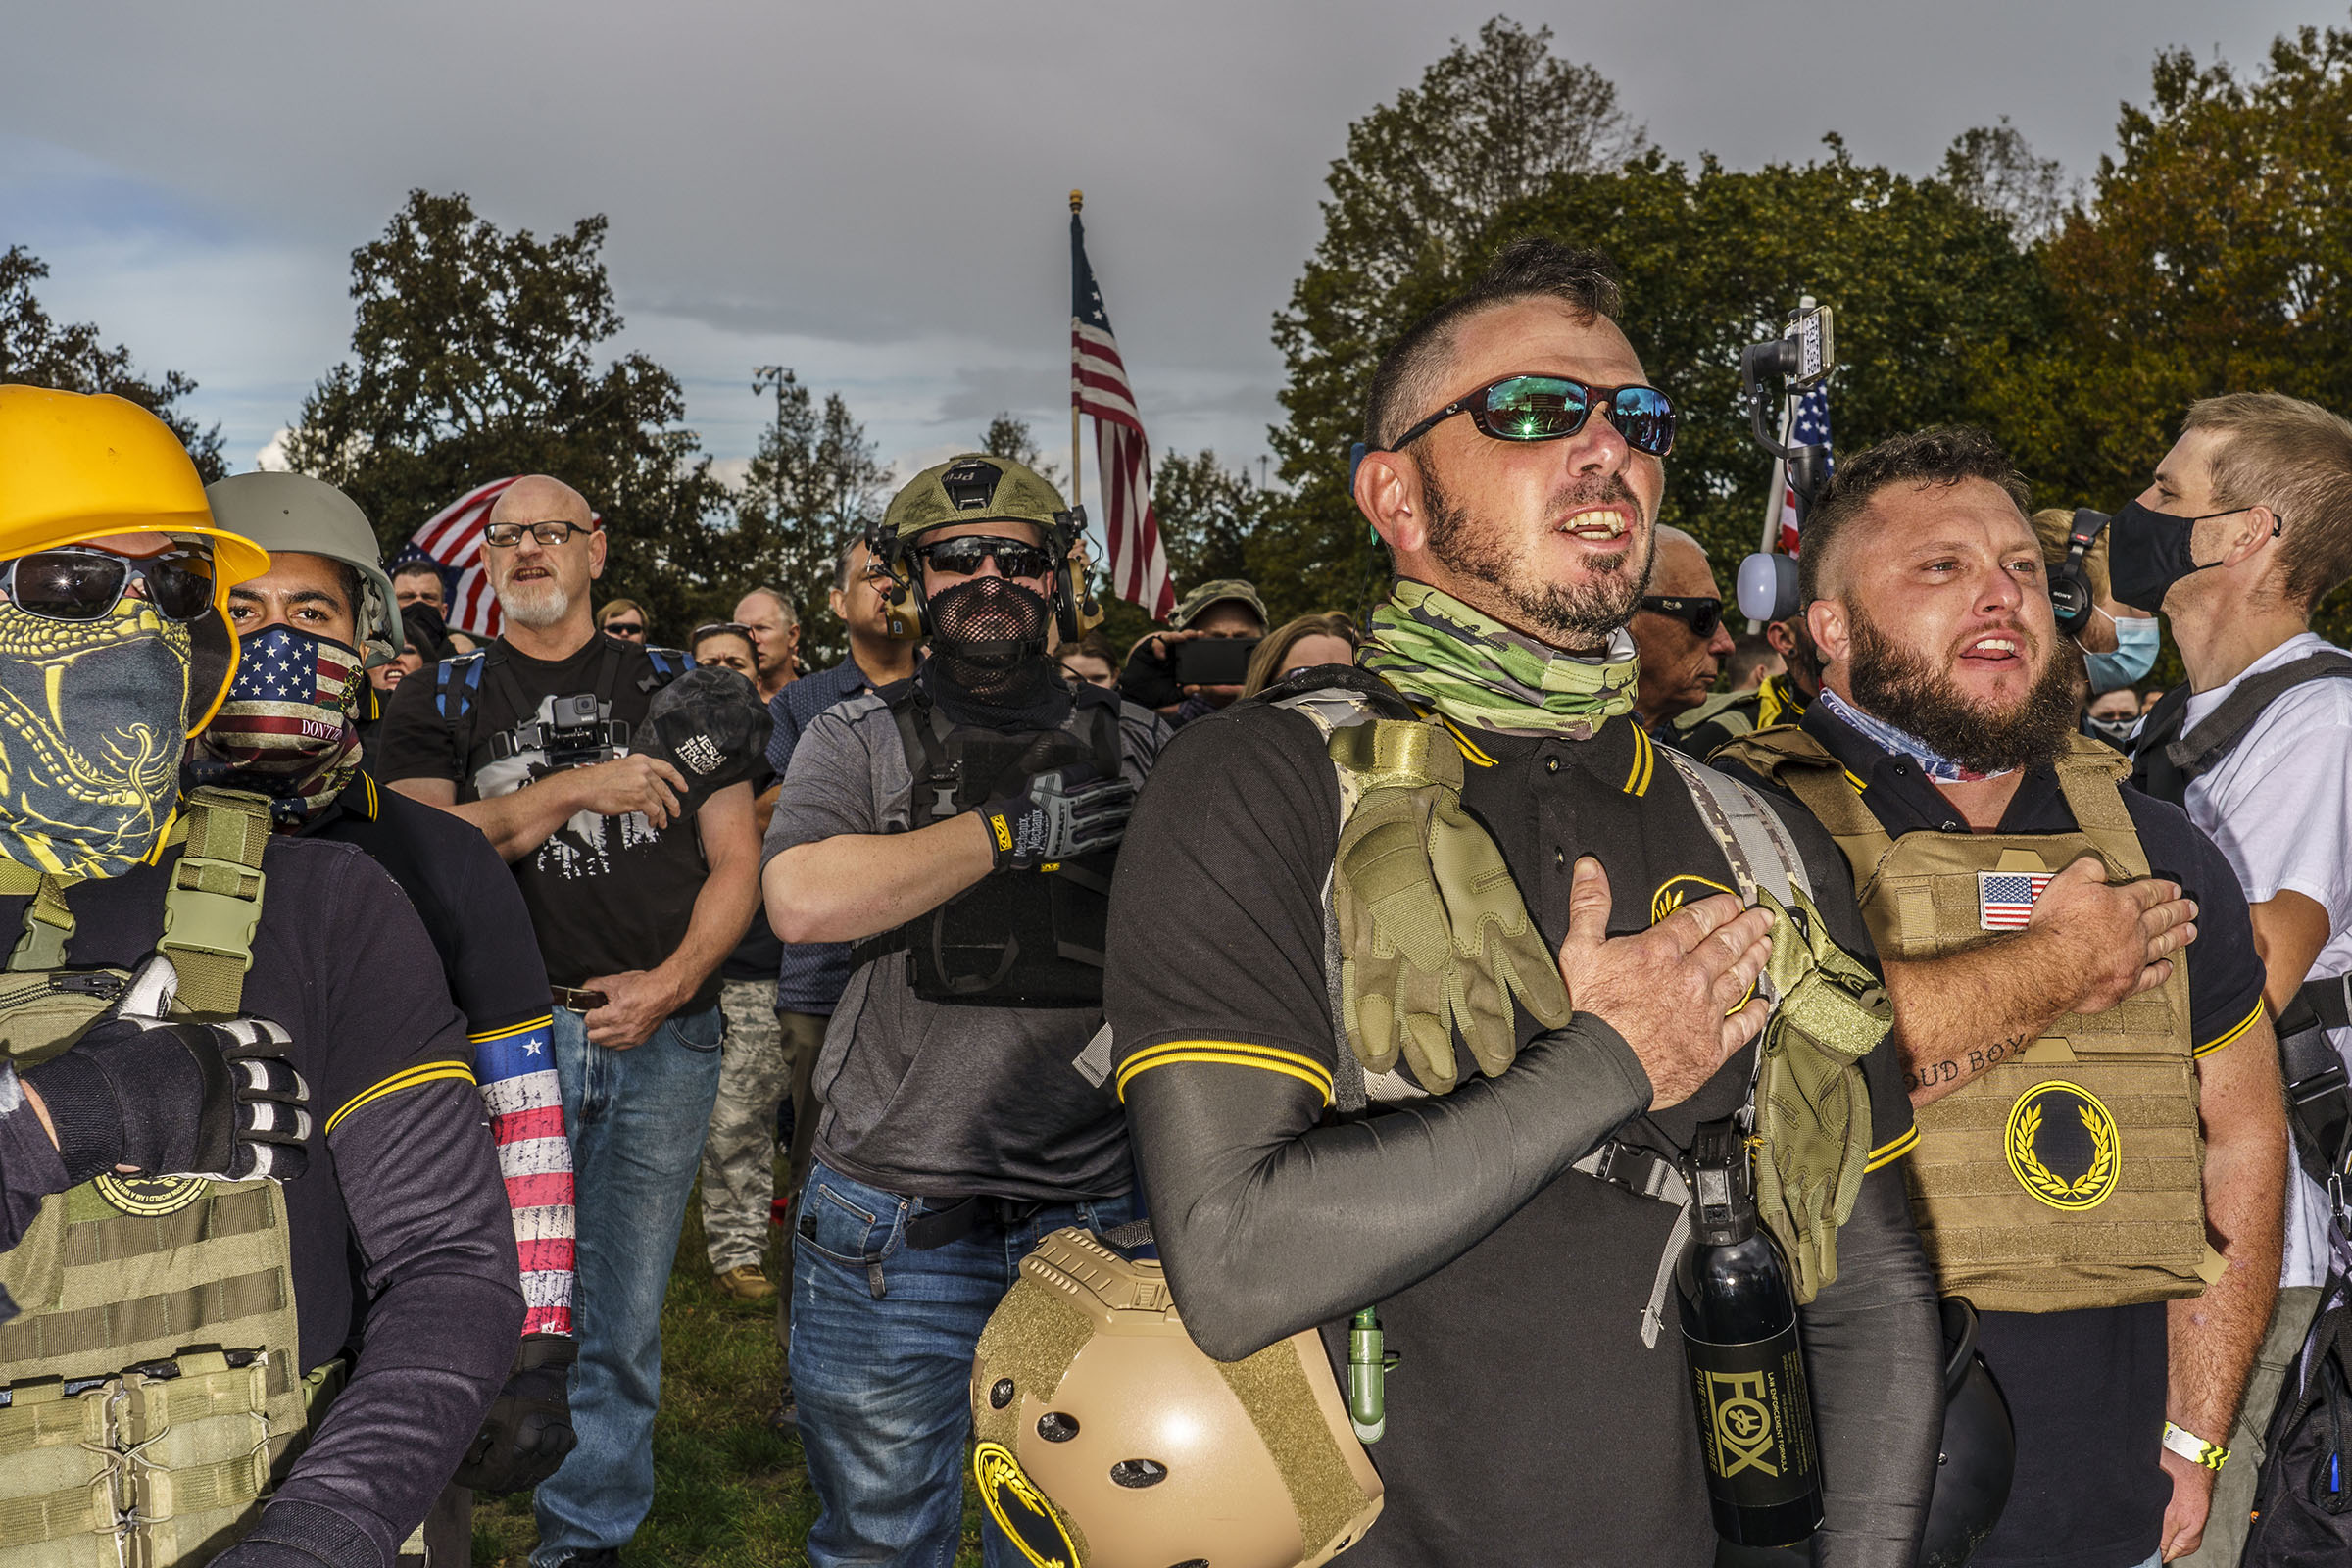 Hundreds of far-right Proud Boys and their supporters held a rally in Delta Park in Portland, Ore., on Sept. 26, 2020.